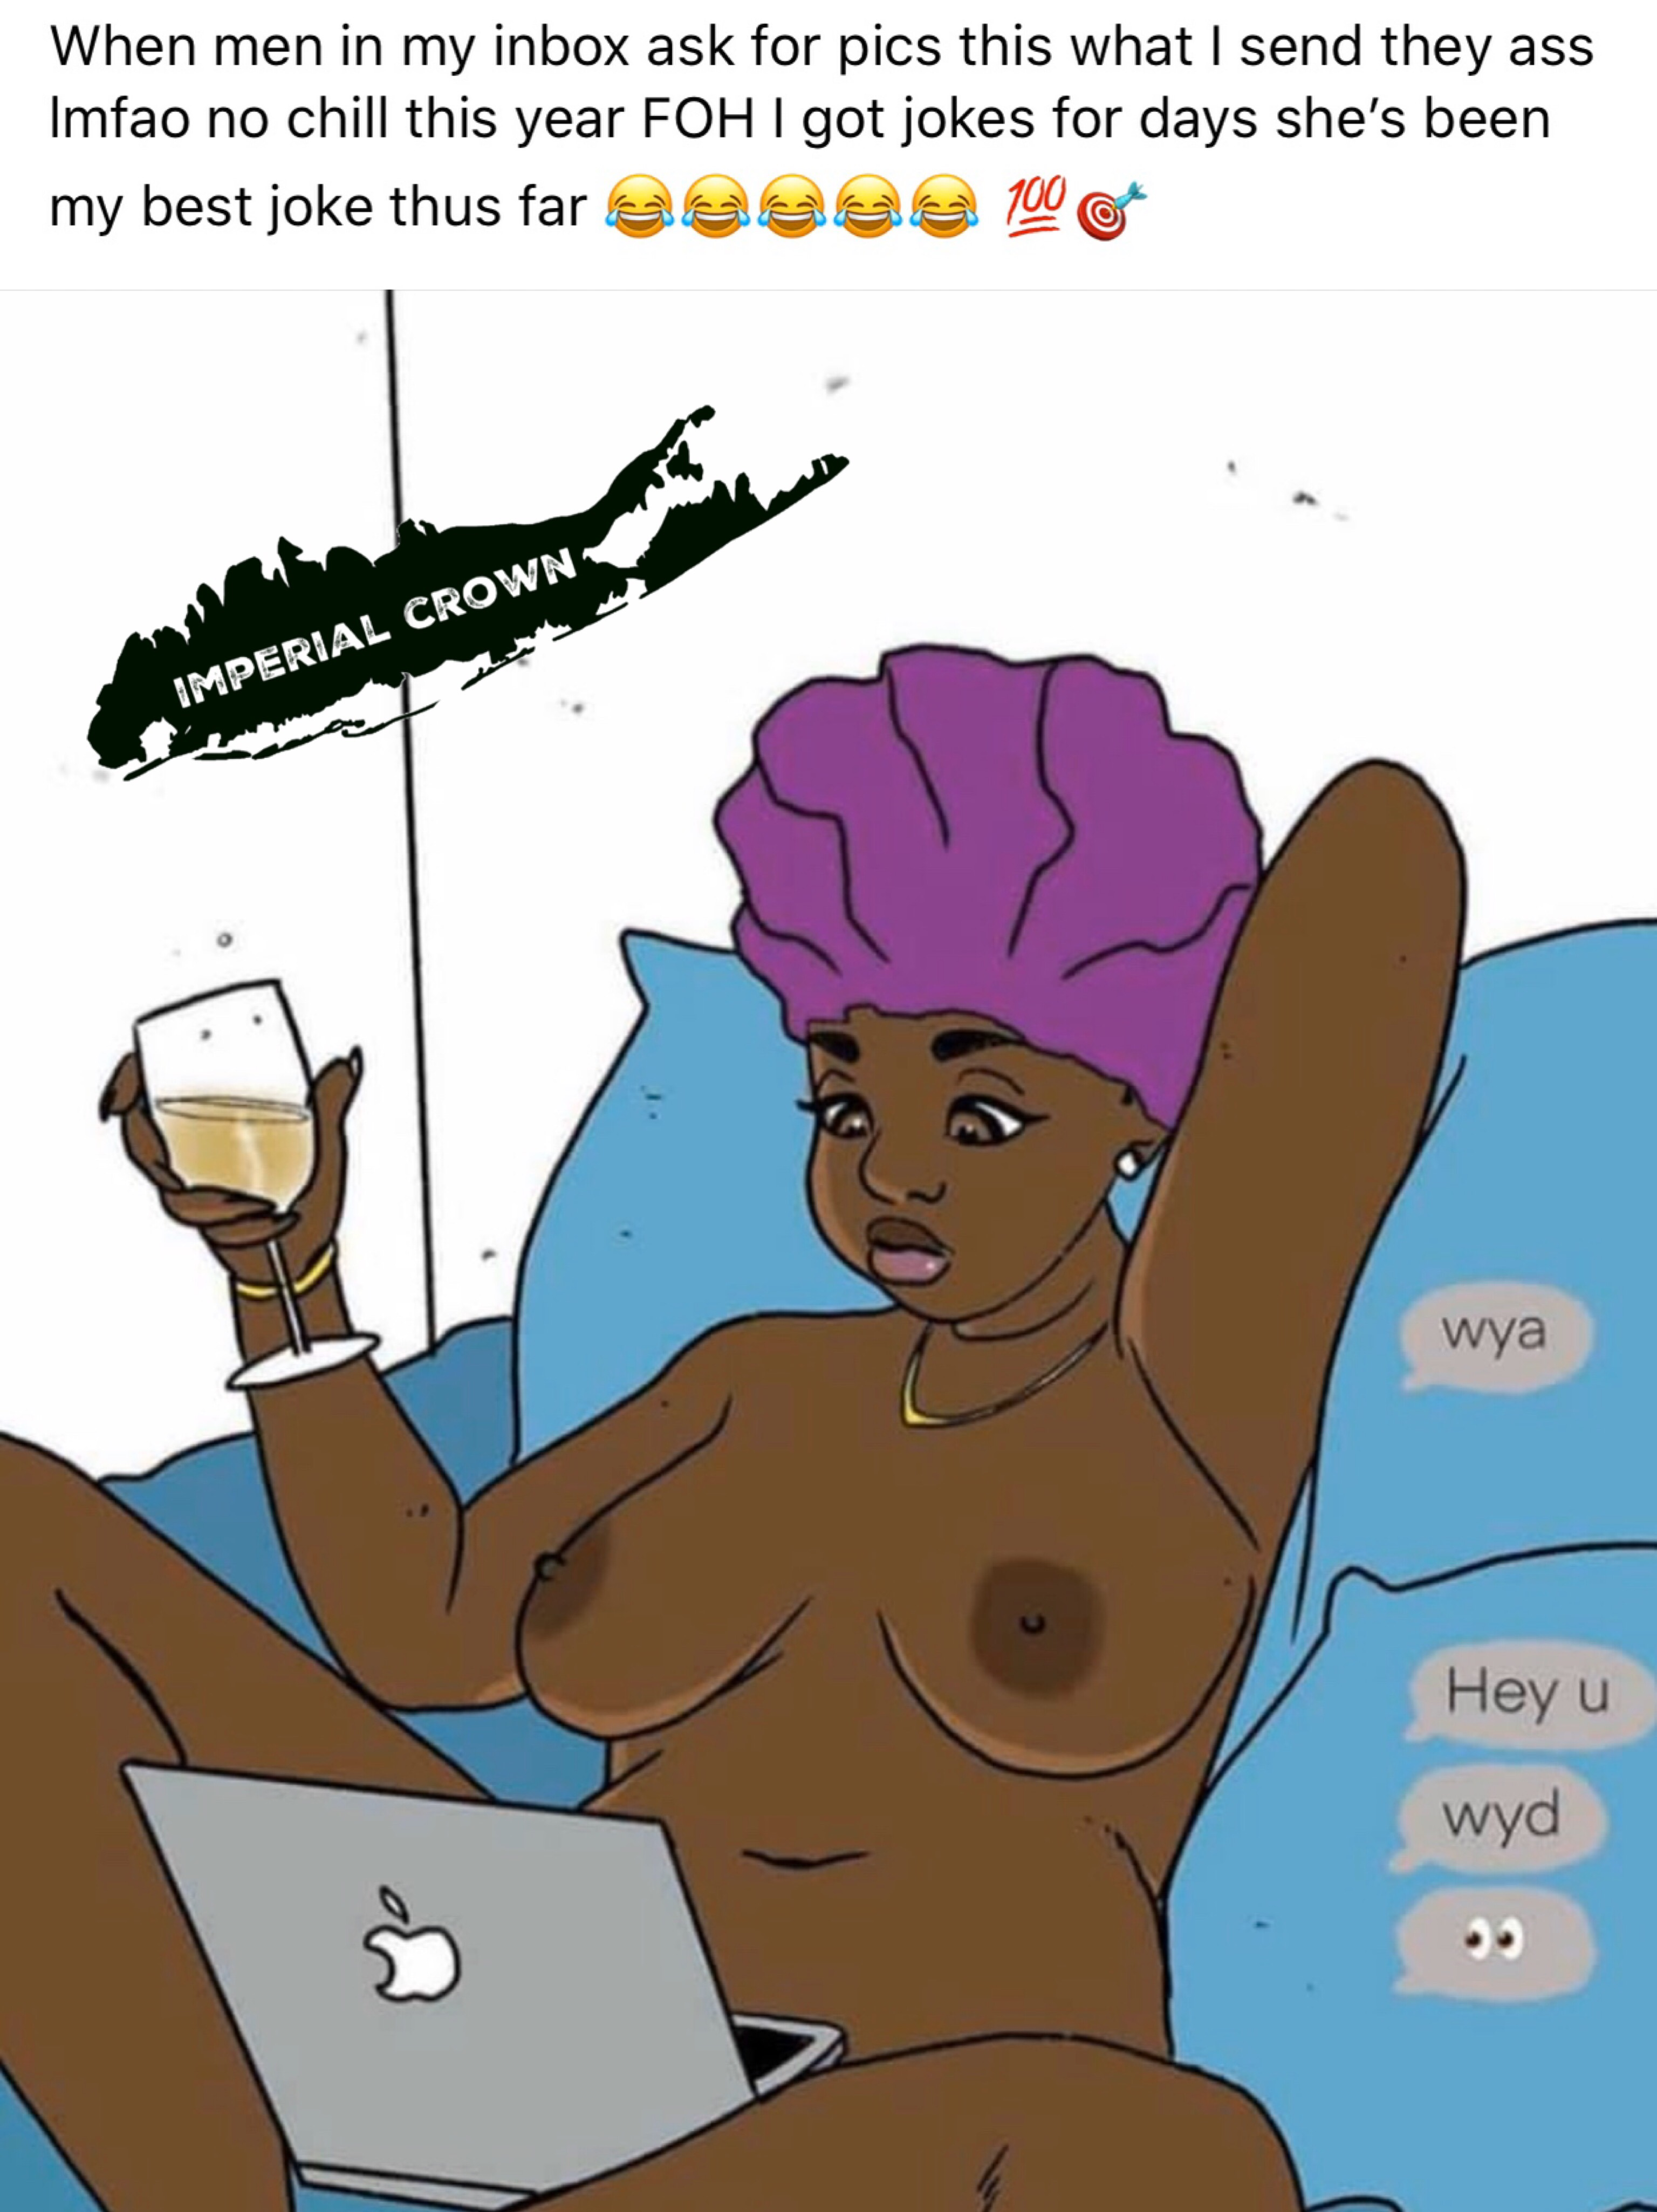 When men in my inbox ask for pics this what I send they ass lmfao no chill this year FOH